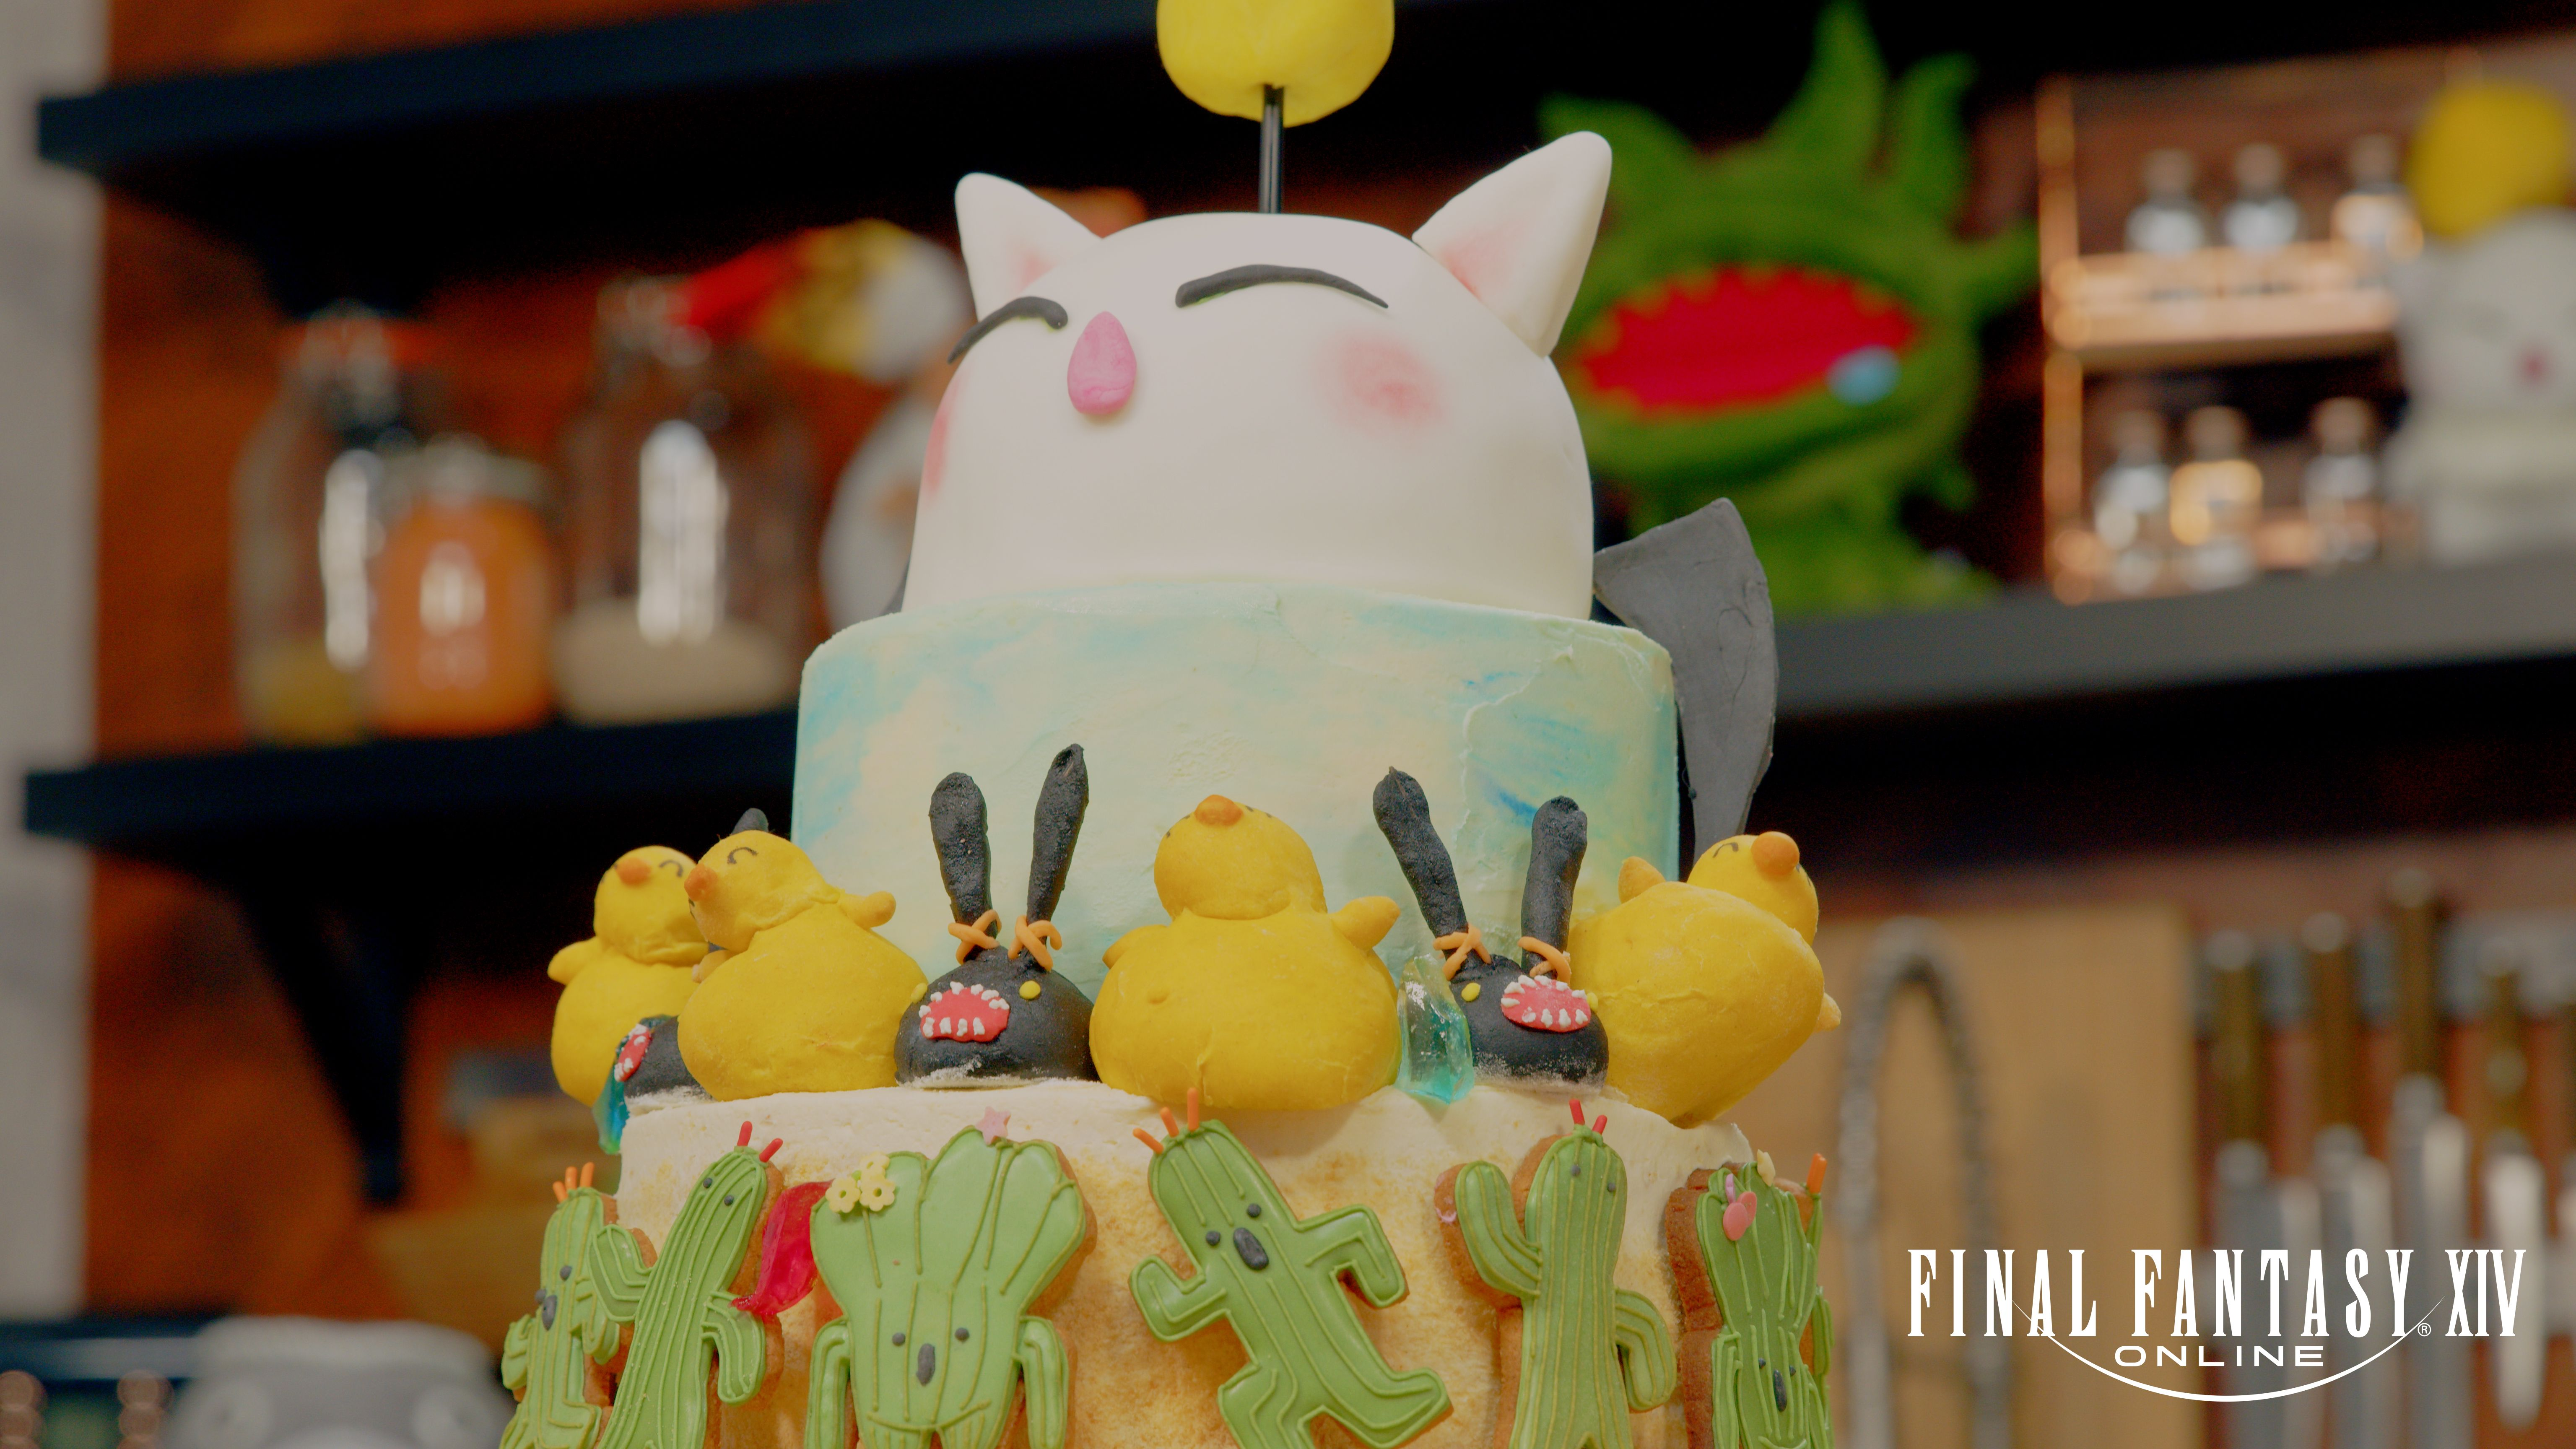 Final Fantasy cake, topped by a moogle